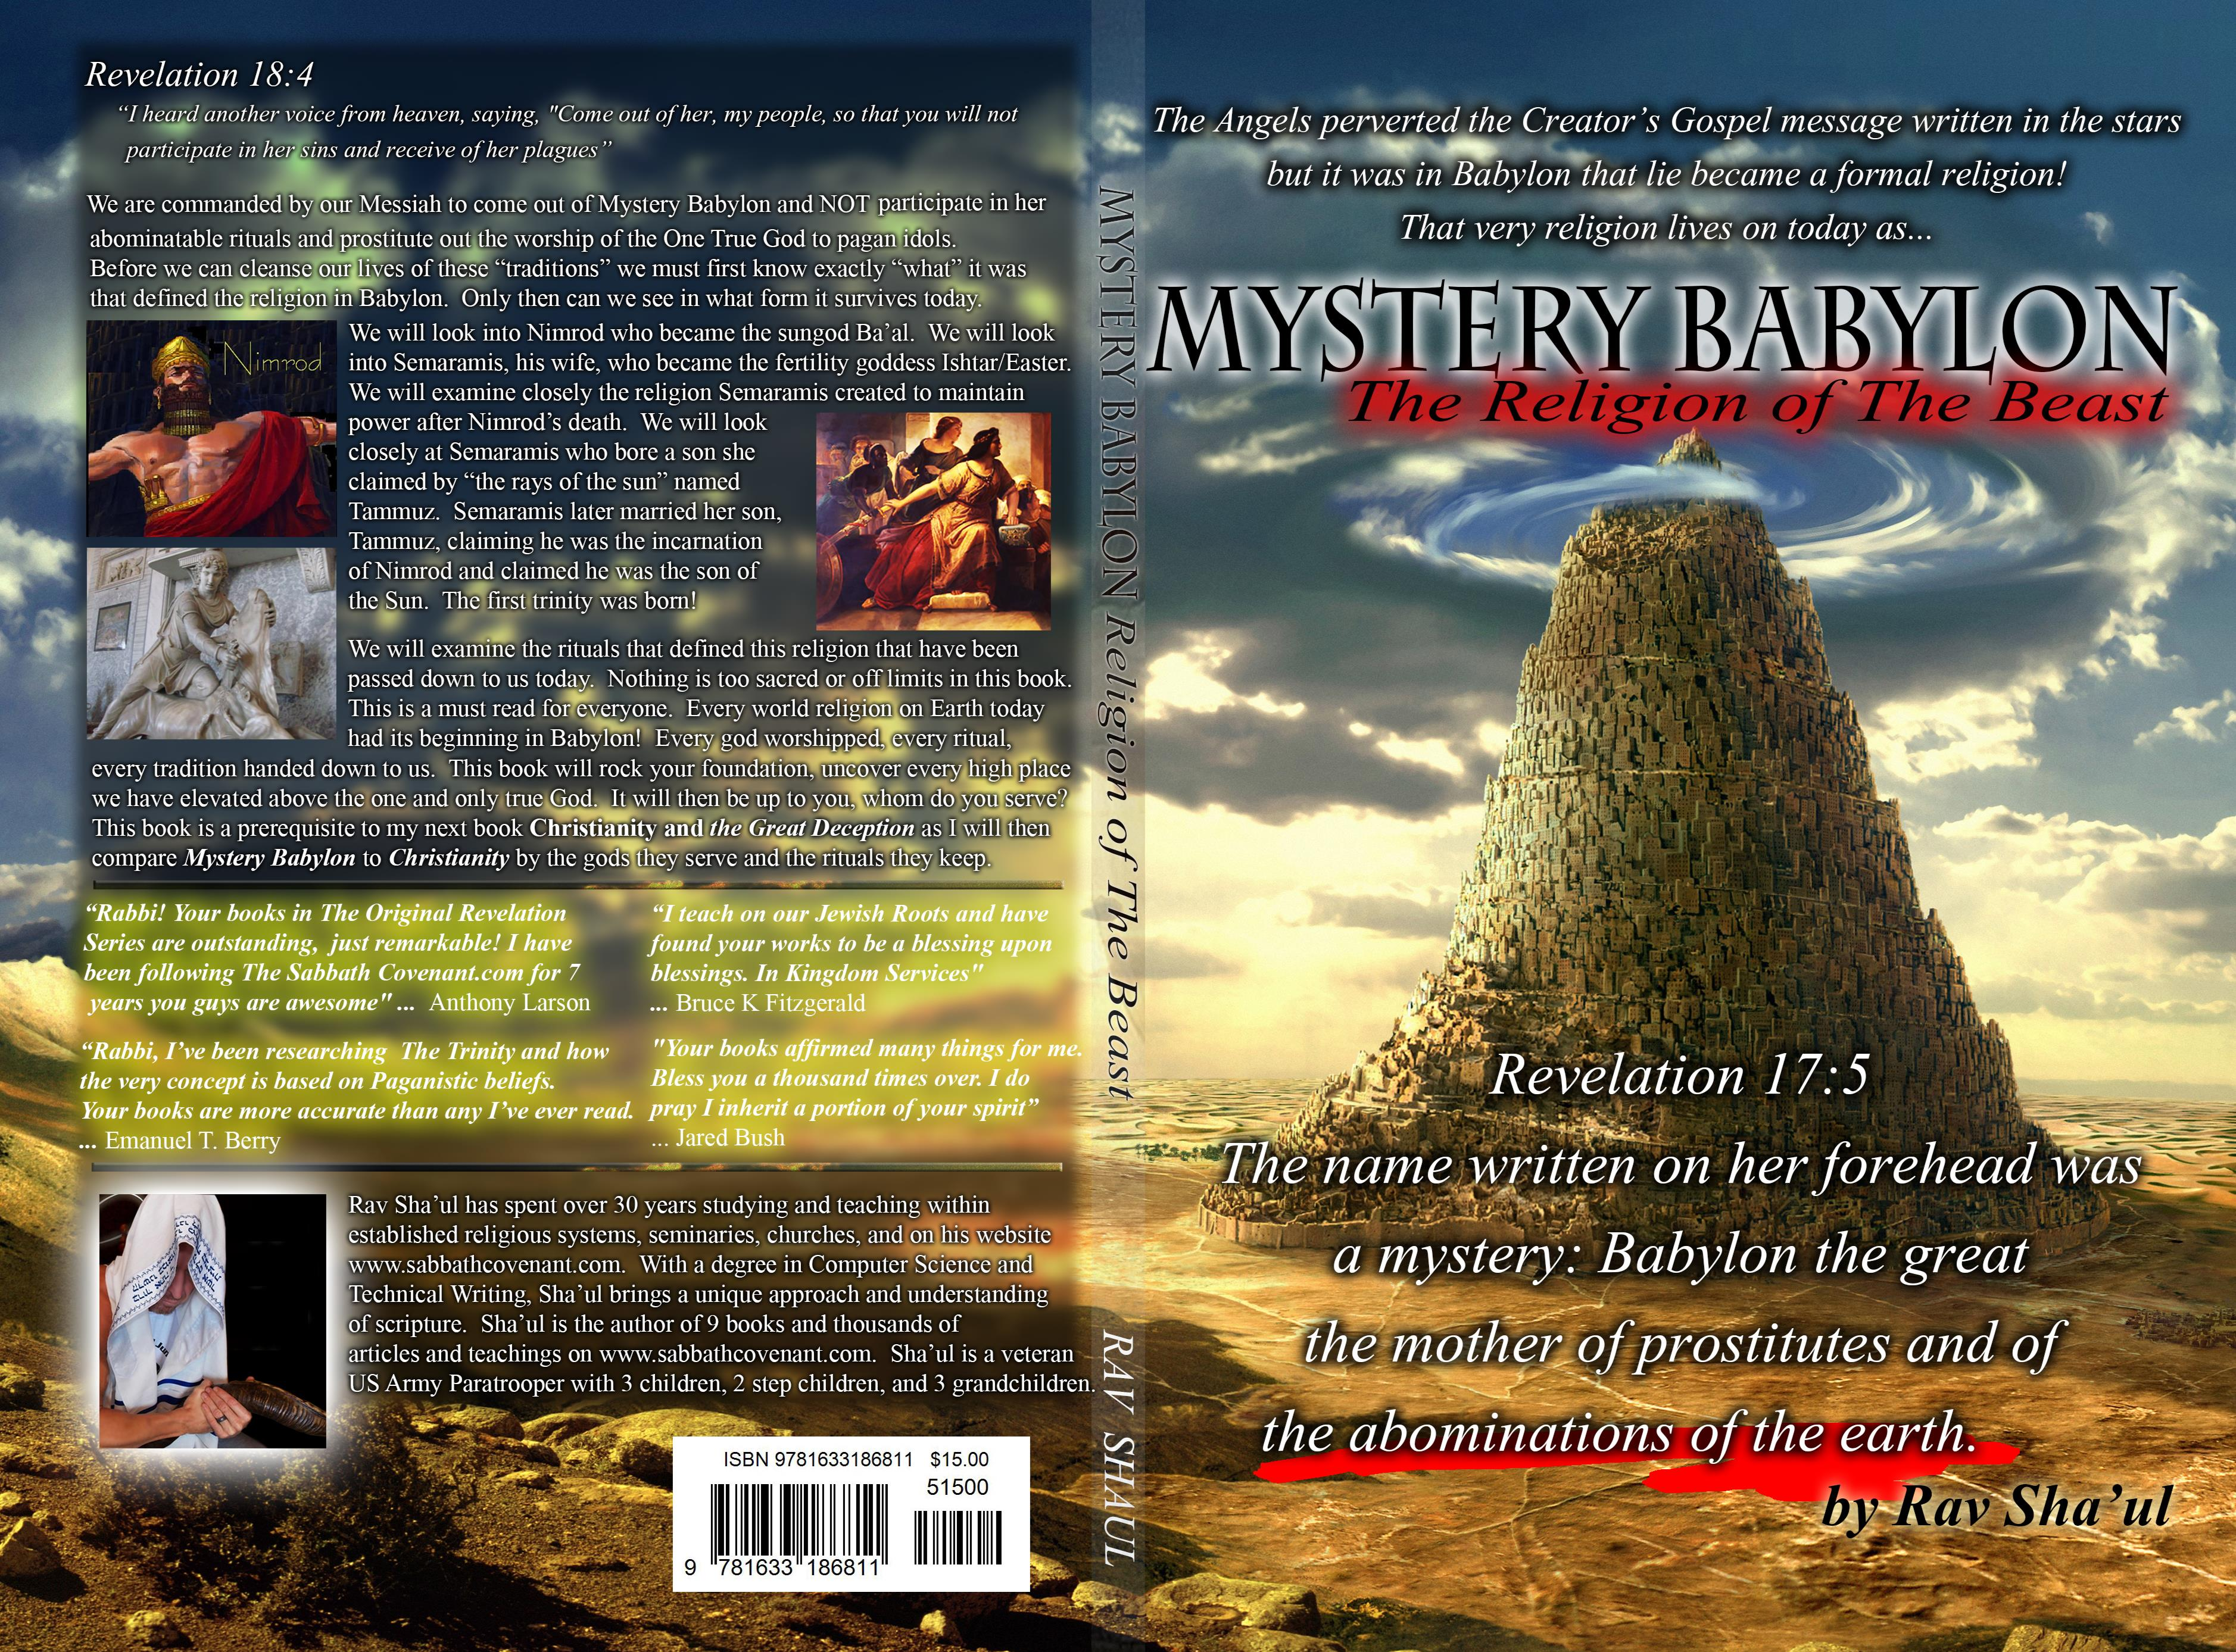 Mystery Babylon the religion of The Beast cover image